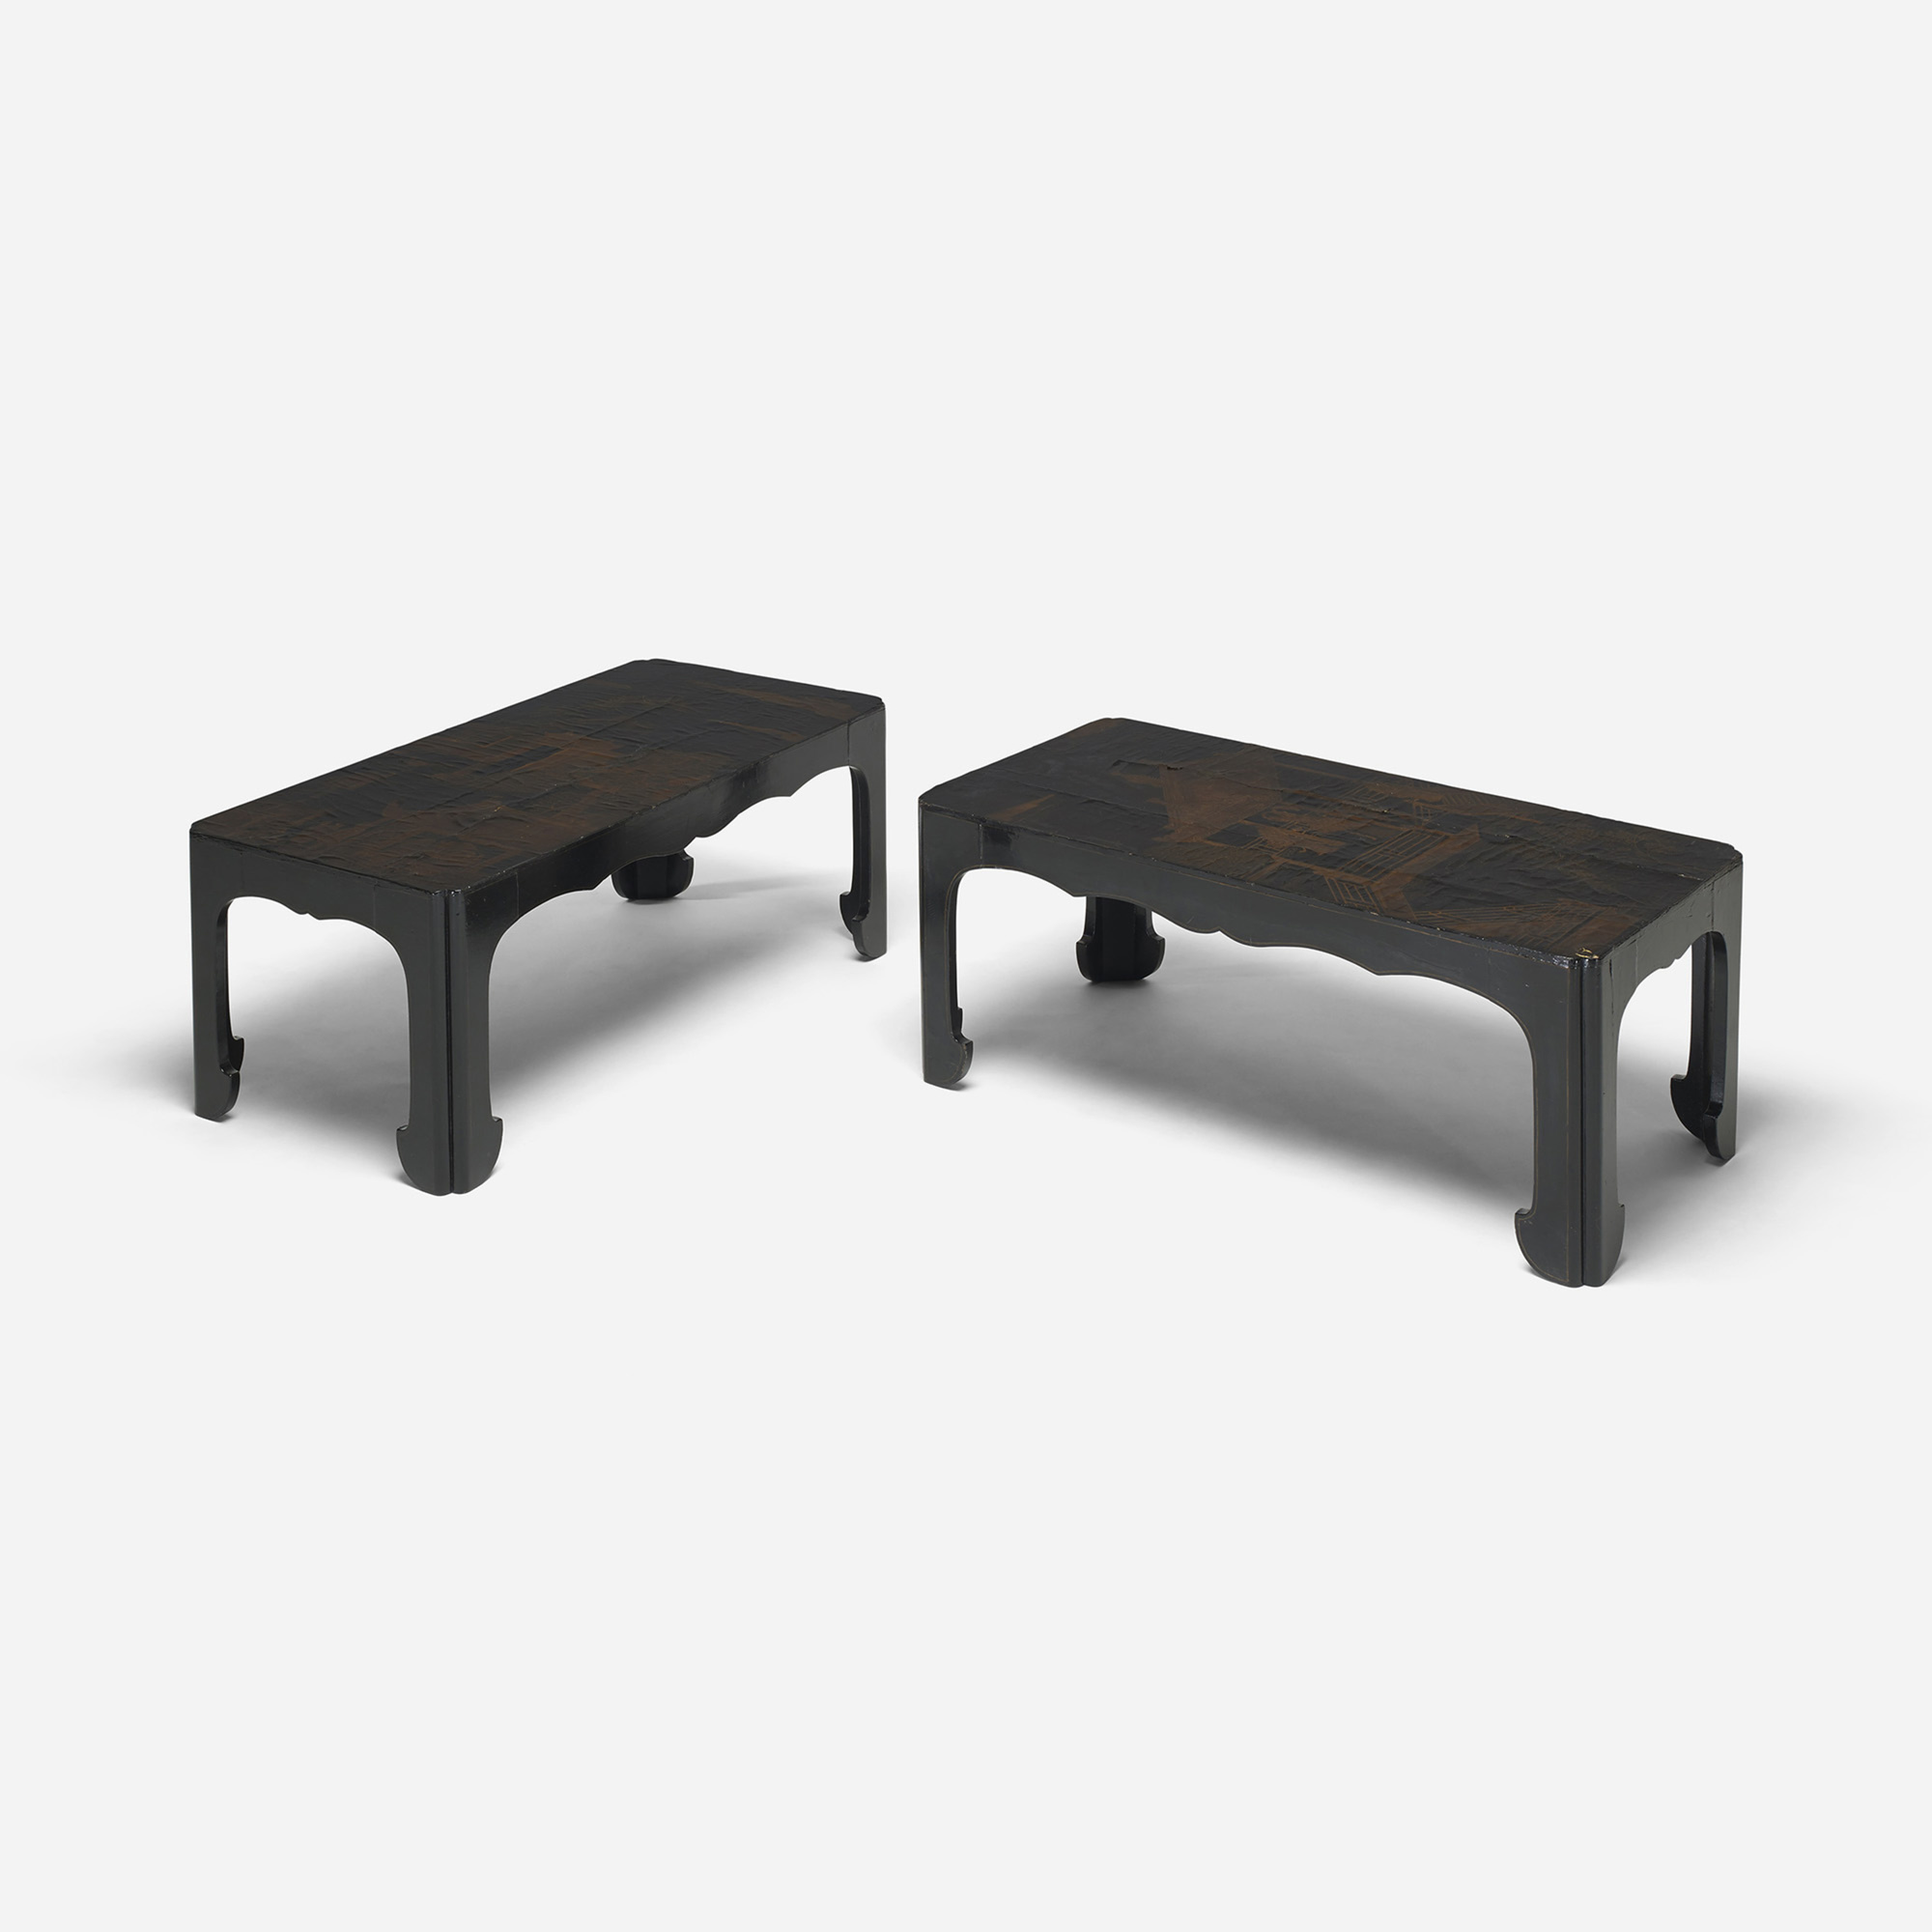 204: Chinese / occasional tables, pair (2 of 4)